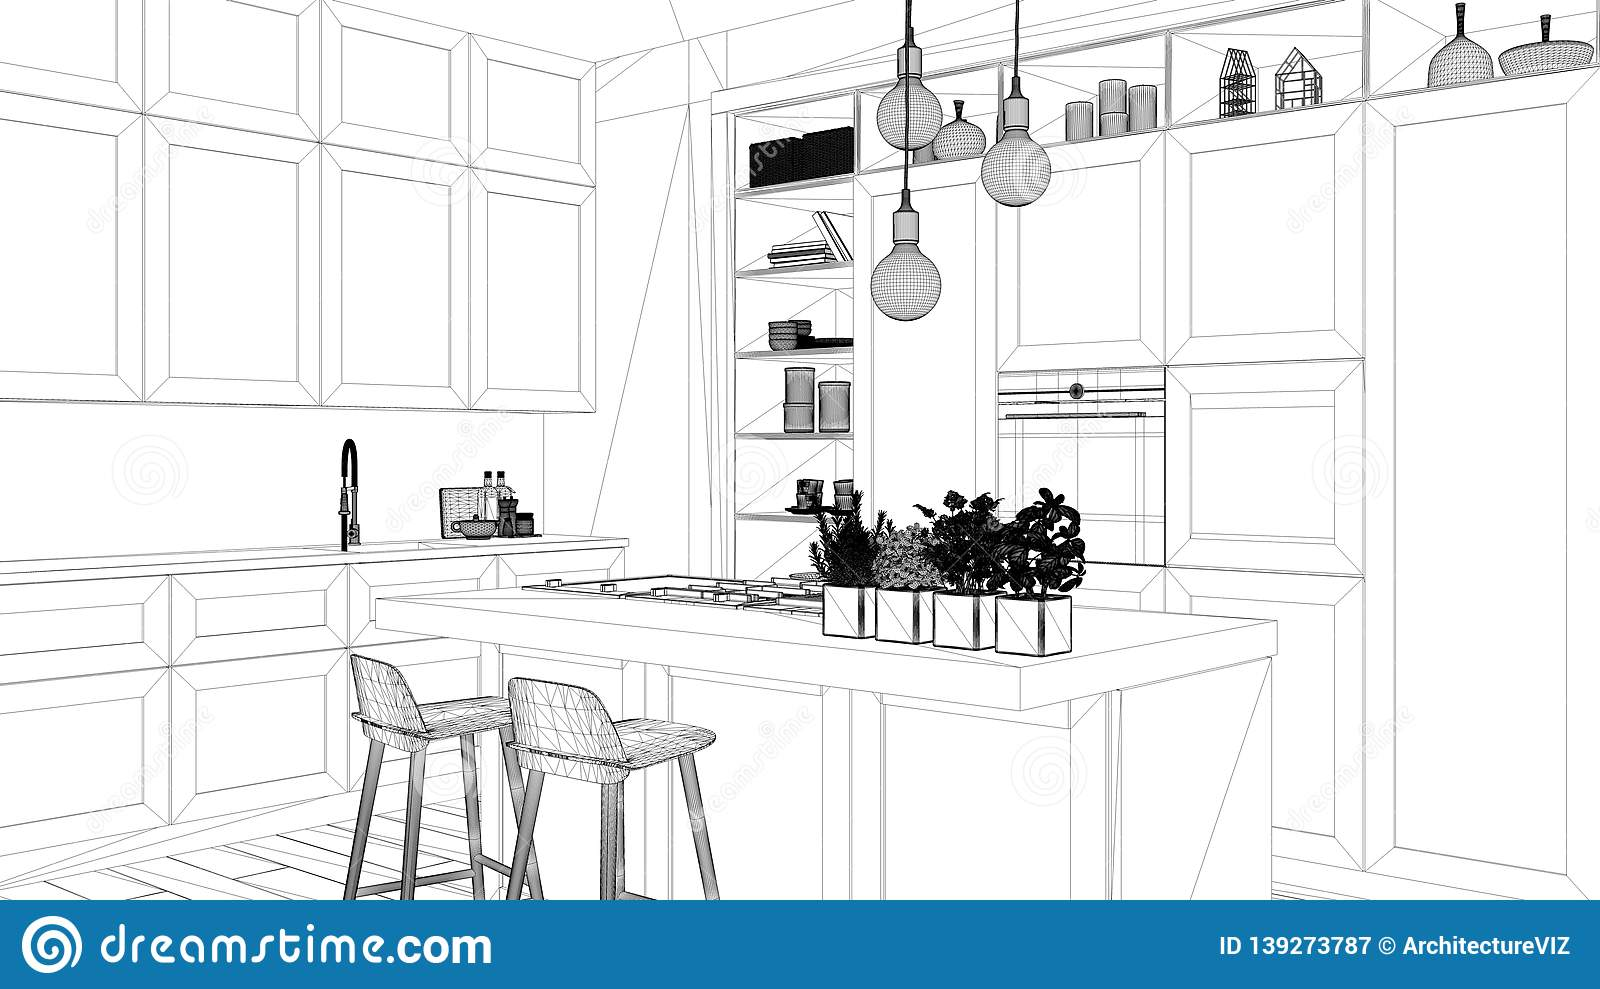 1 695 Interior Design Sketch Kitchen Photos Free Royalty Free Stock Photos From Dreamstime